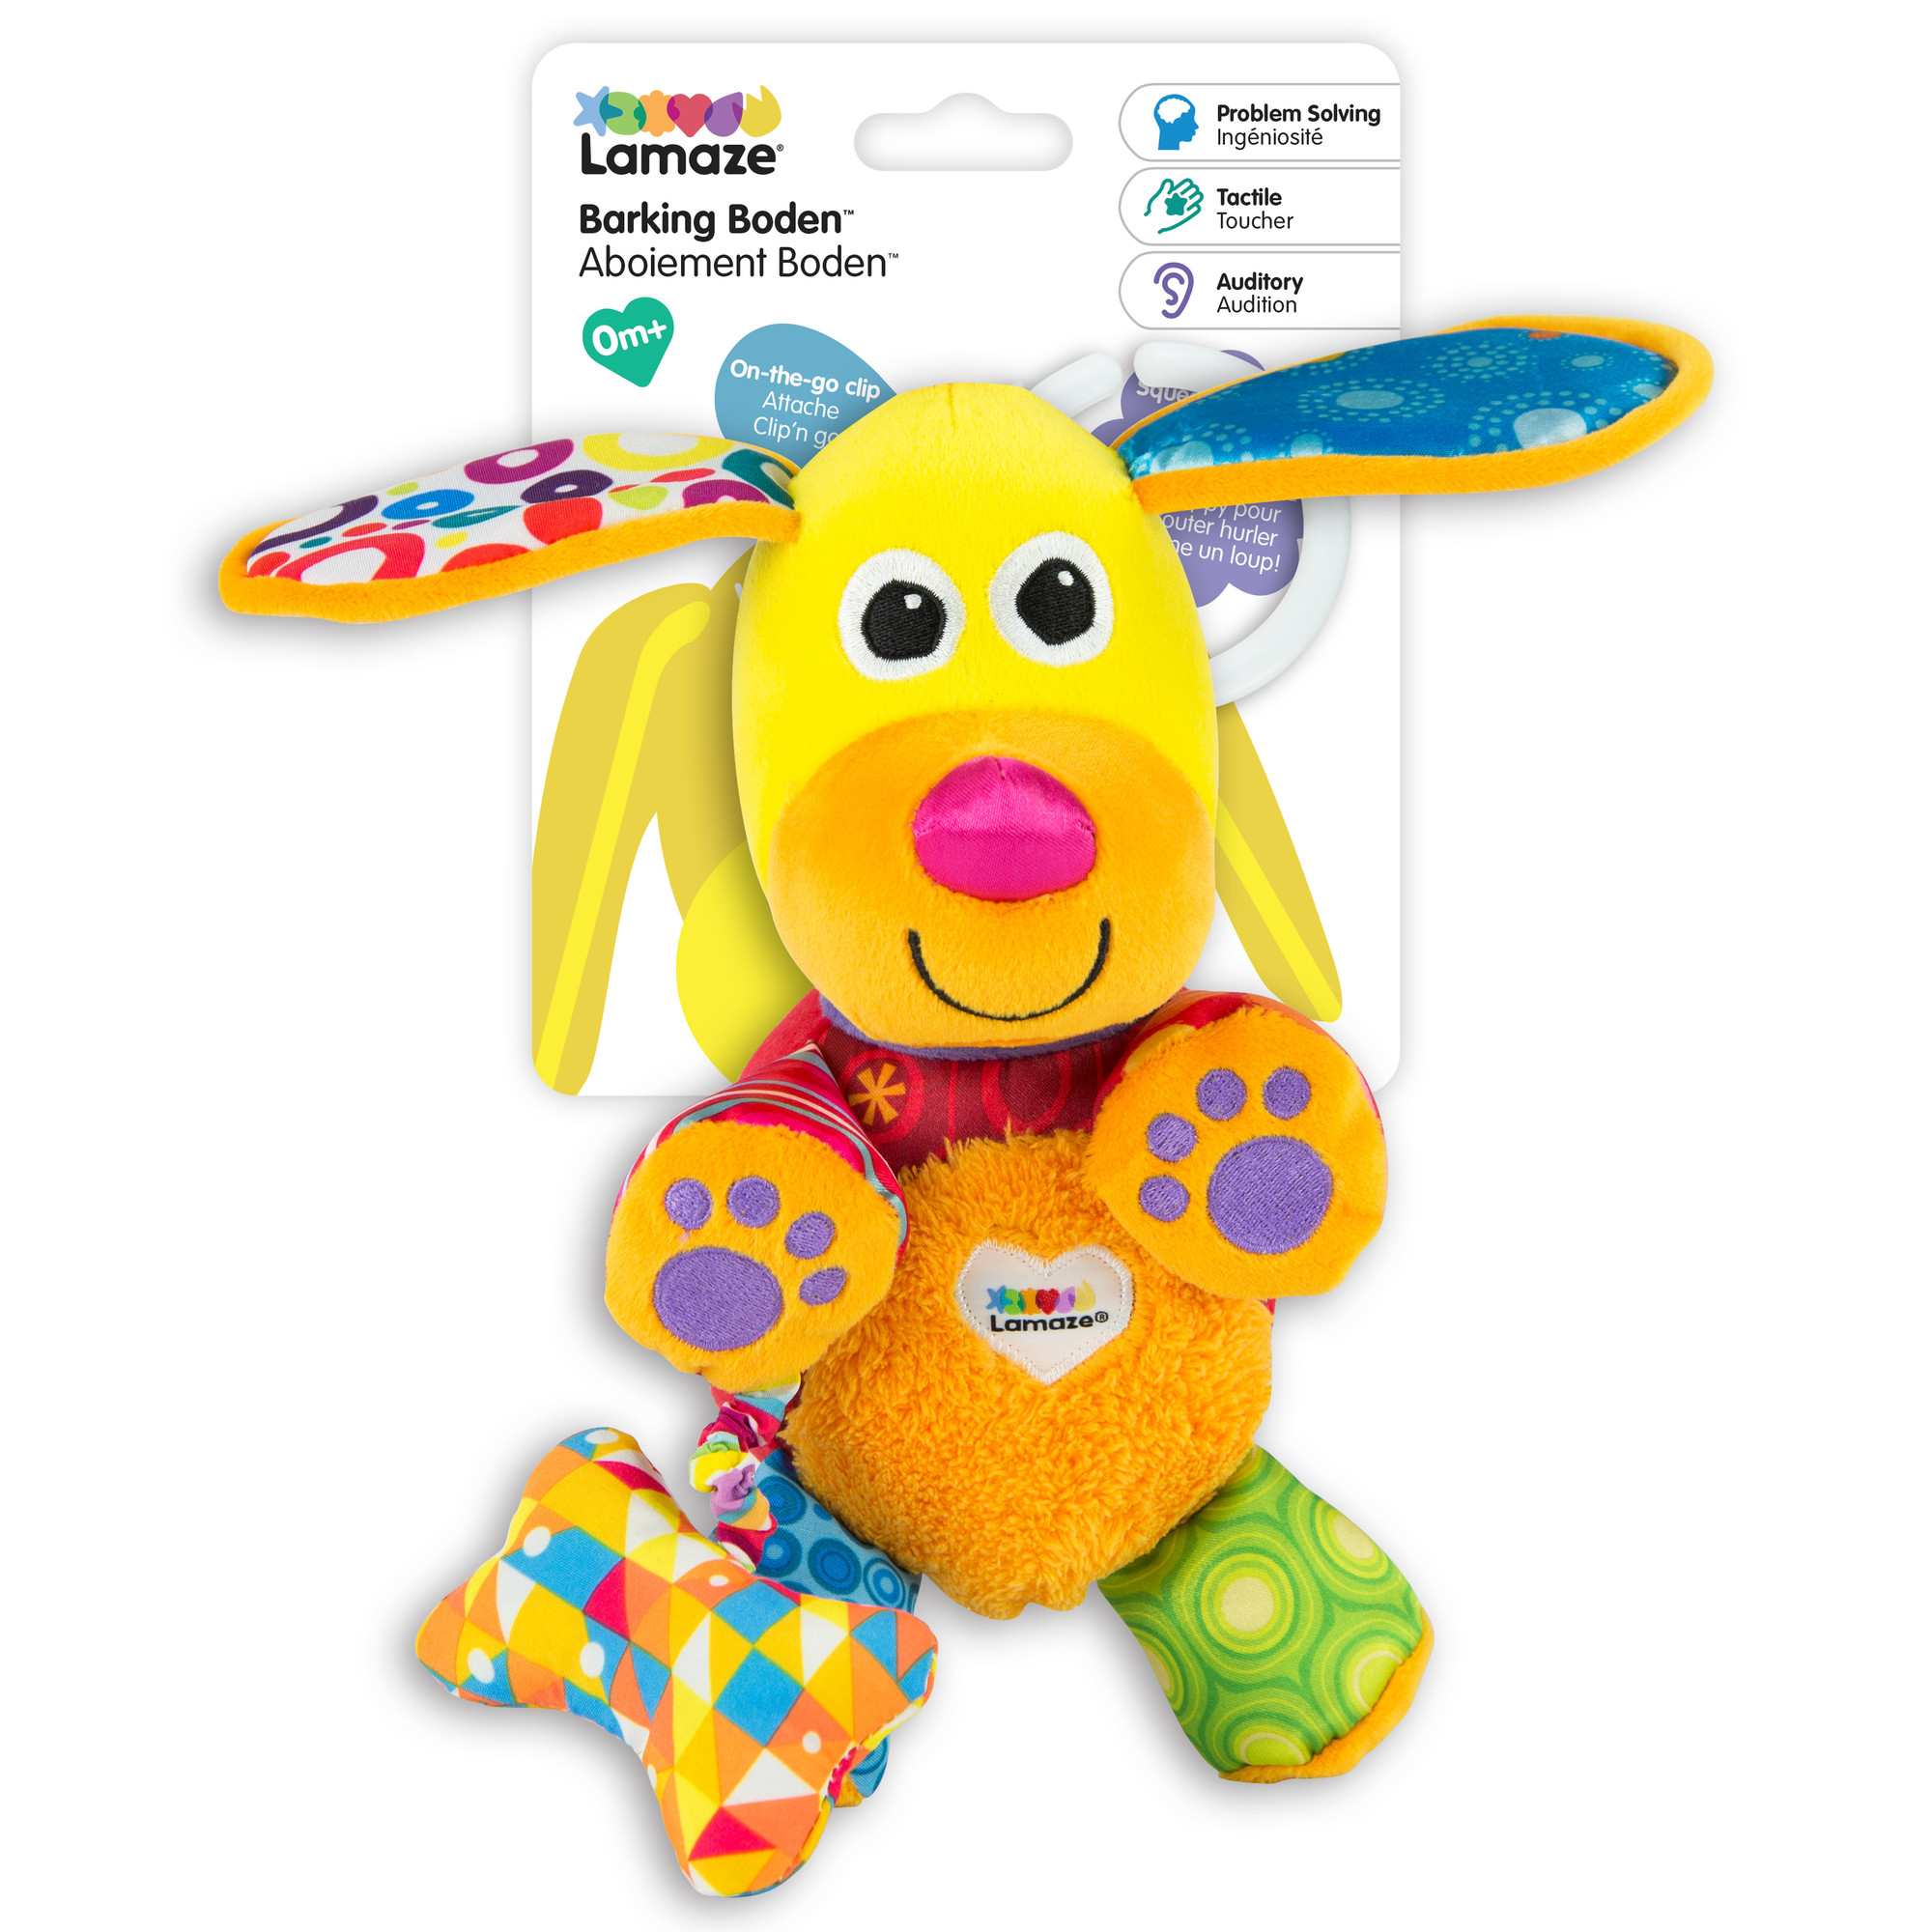 Lamaze Barking Boden Soft Toy